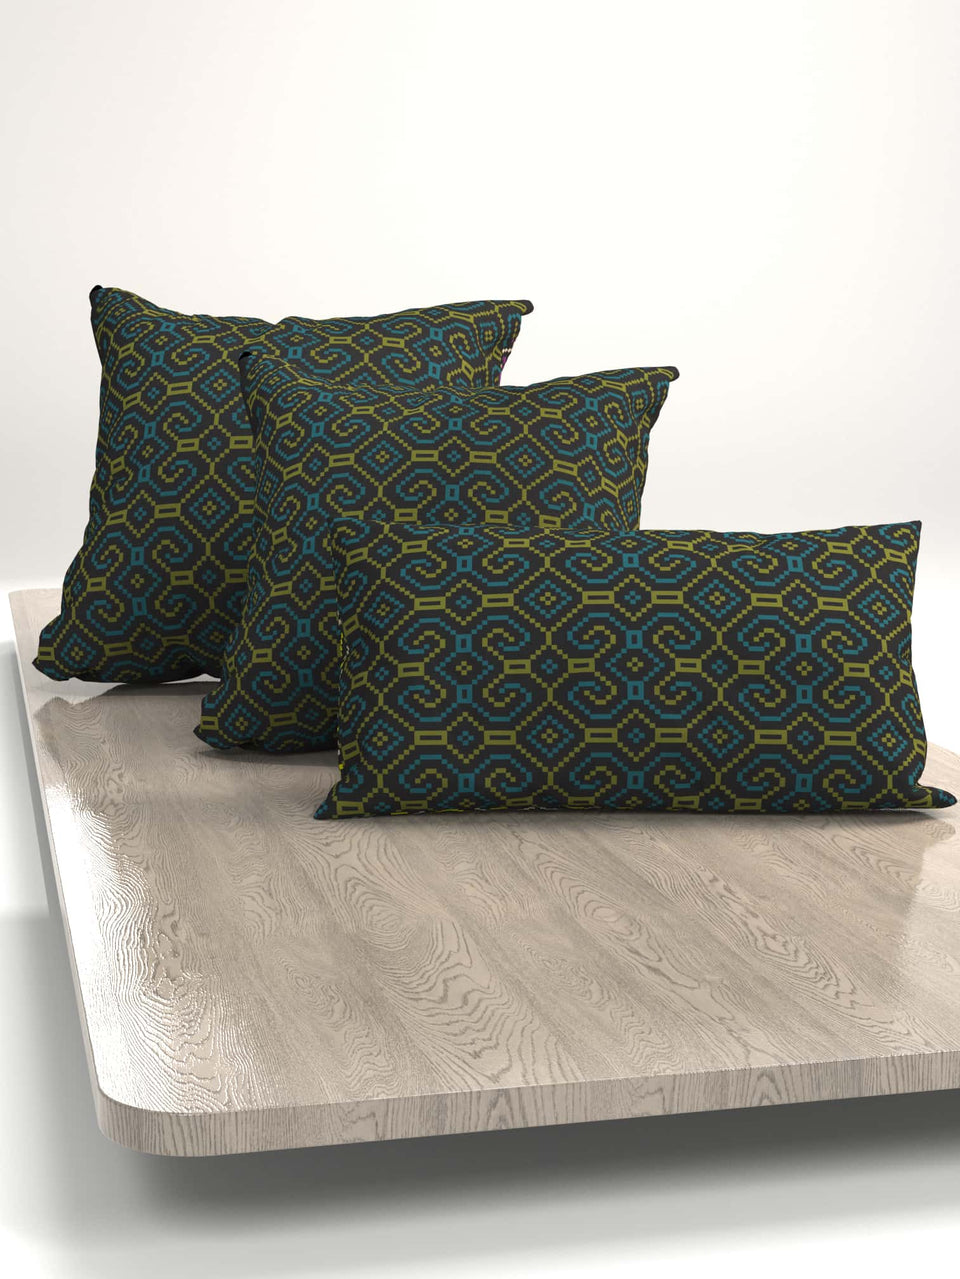 Shipibo-Conibo Cushion - Turquoise Olive on Black